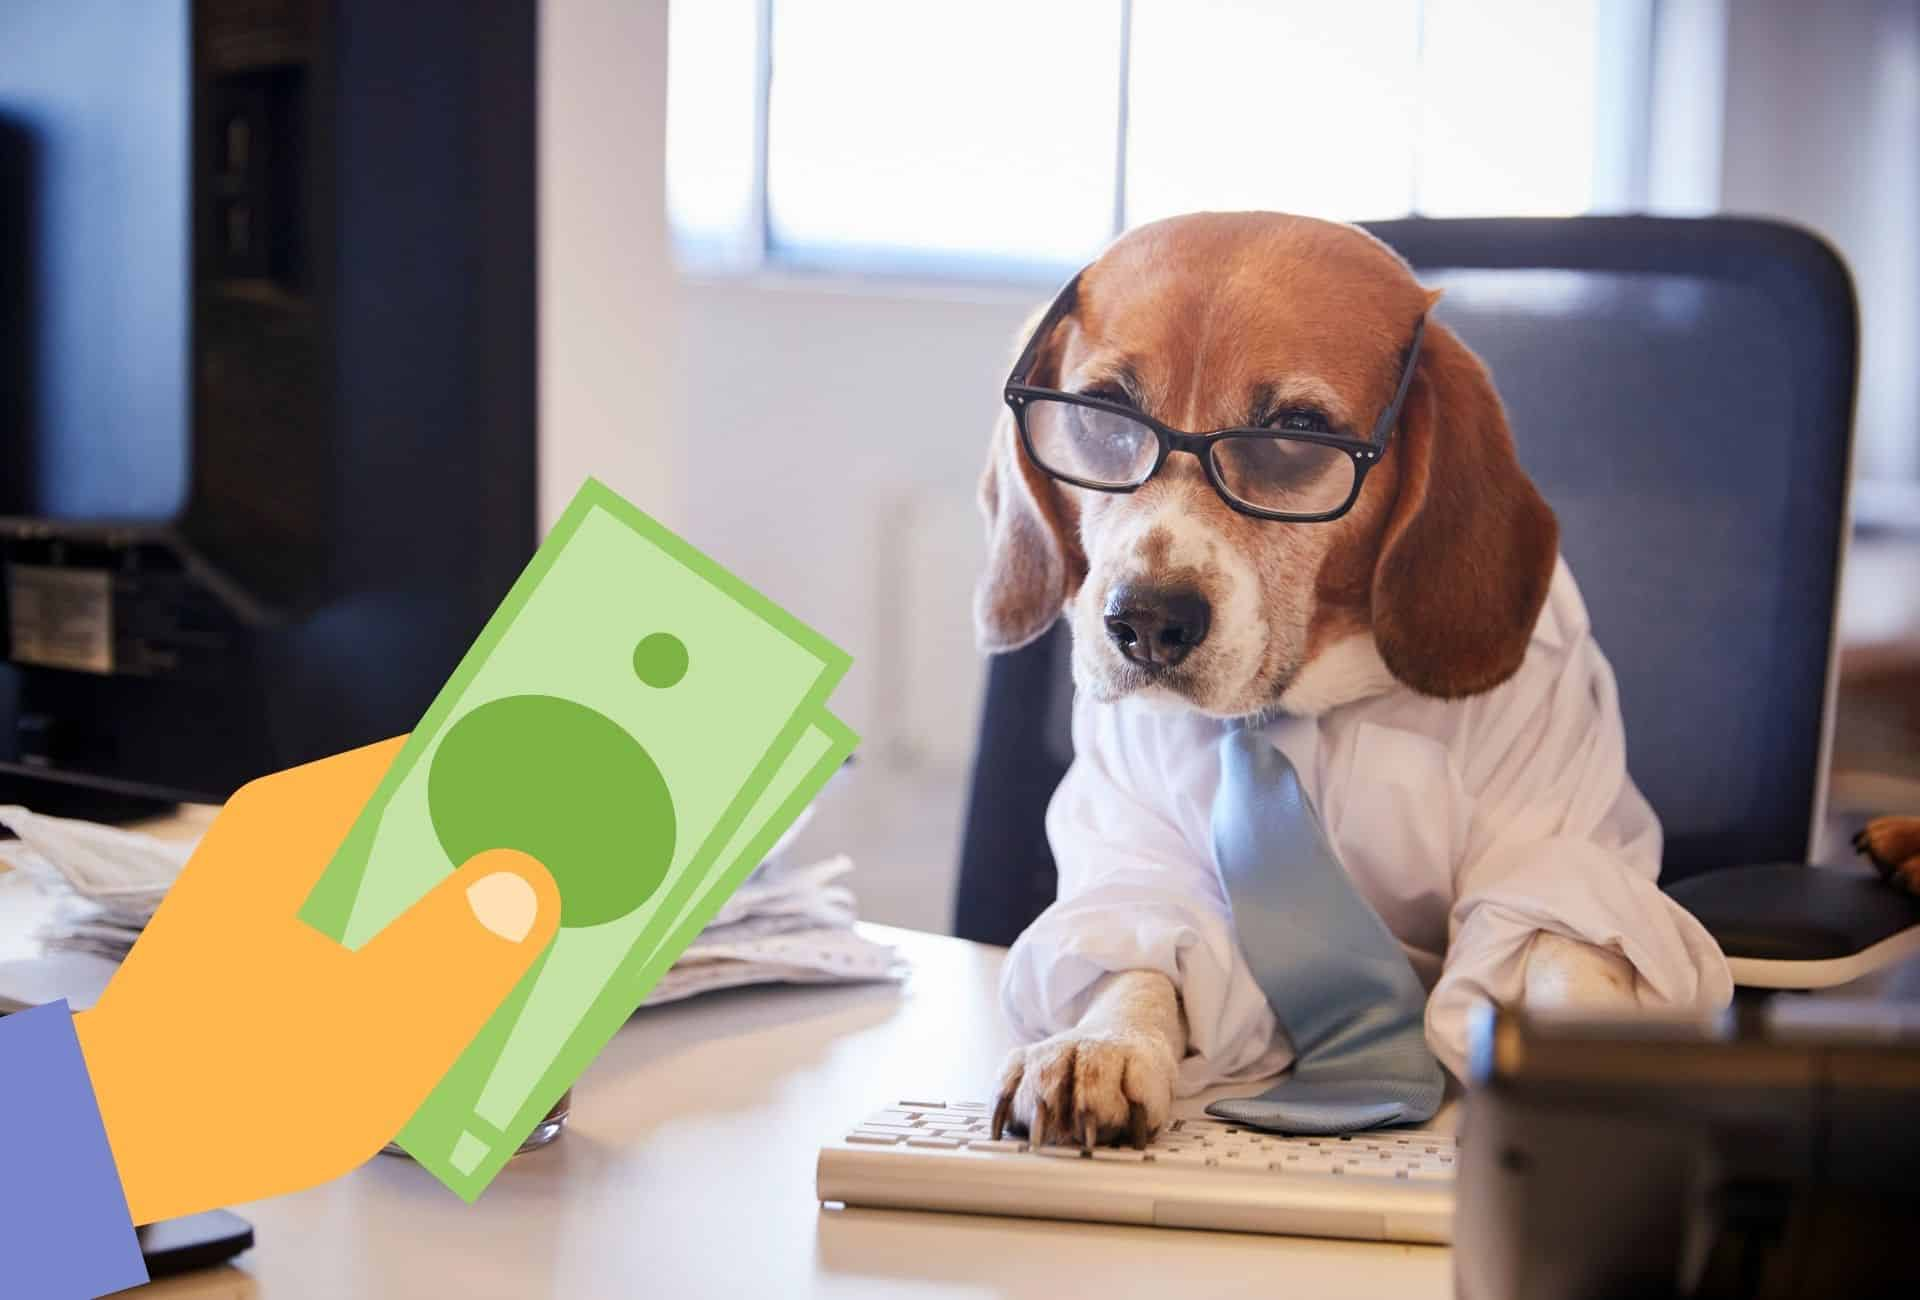 Beagle dressed in business clothing working on a computer receives a couple of dollar bills, showing that adopting a Beagle costs money.